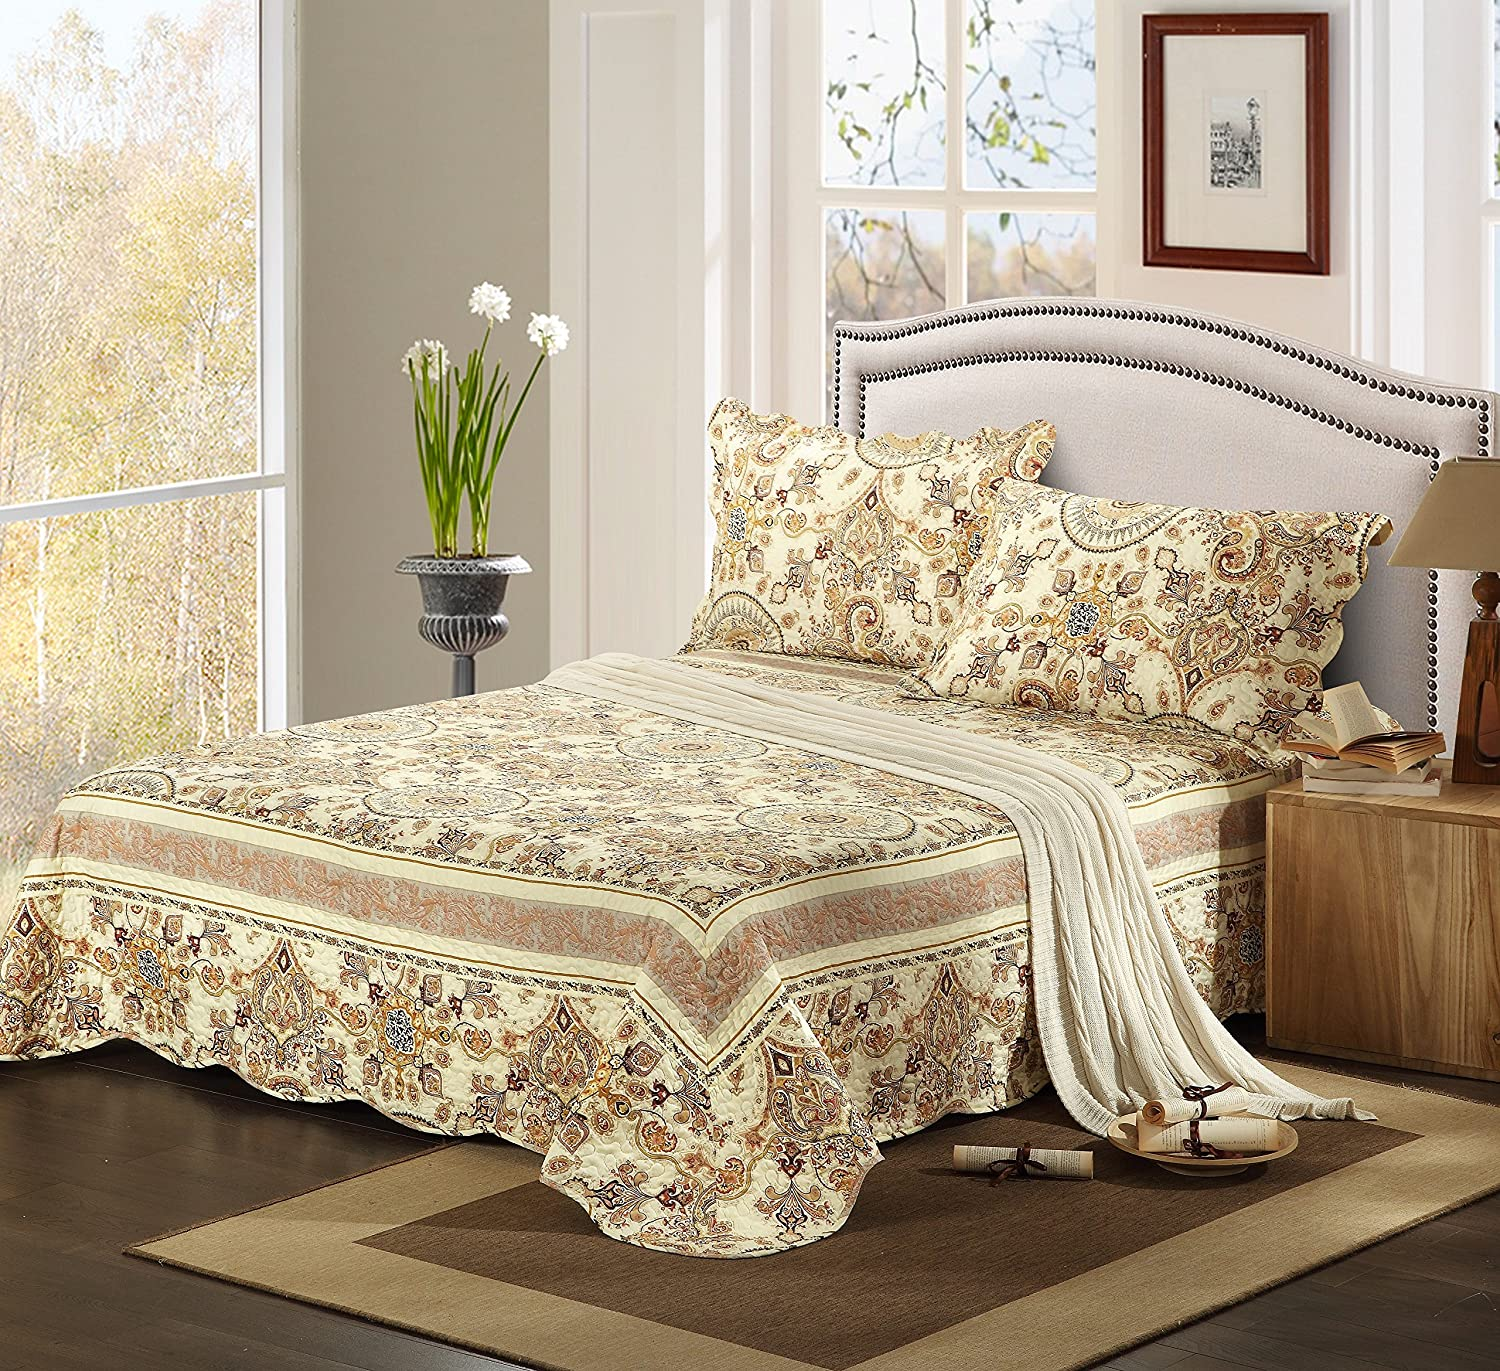 Tache Home Fashion SD3198-Queen 3 Piece Summer Gold Royal Medallion Reversible Bedspread Quilt Set, Queen